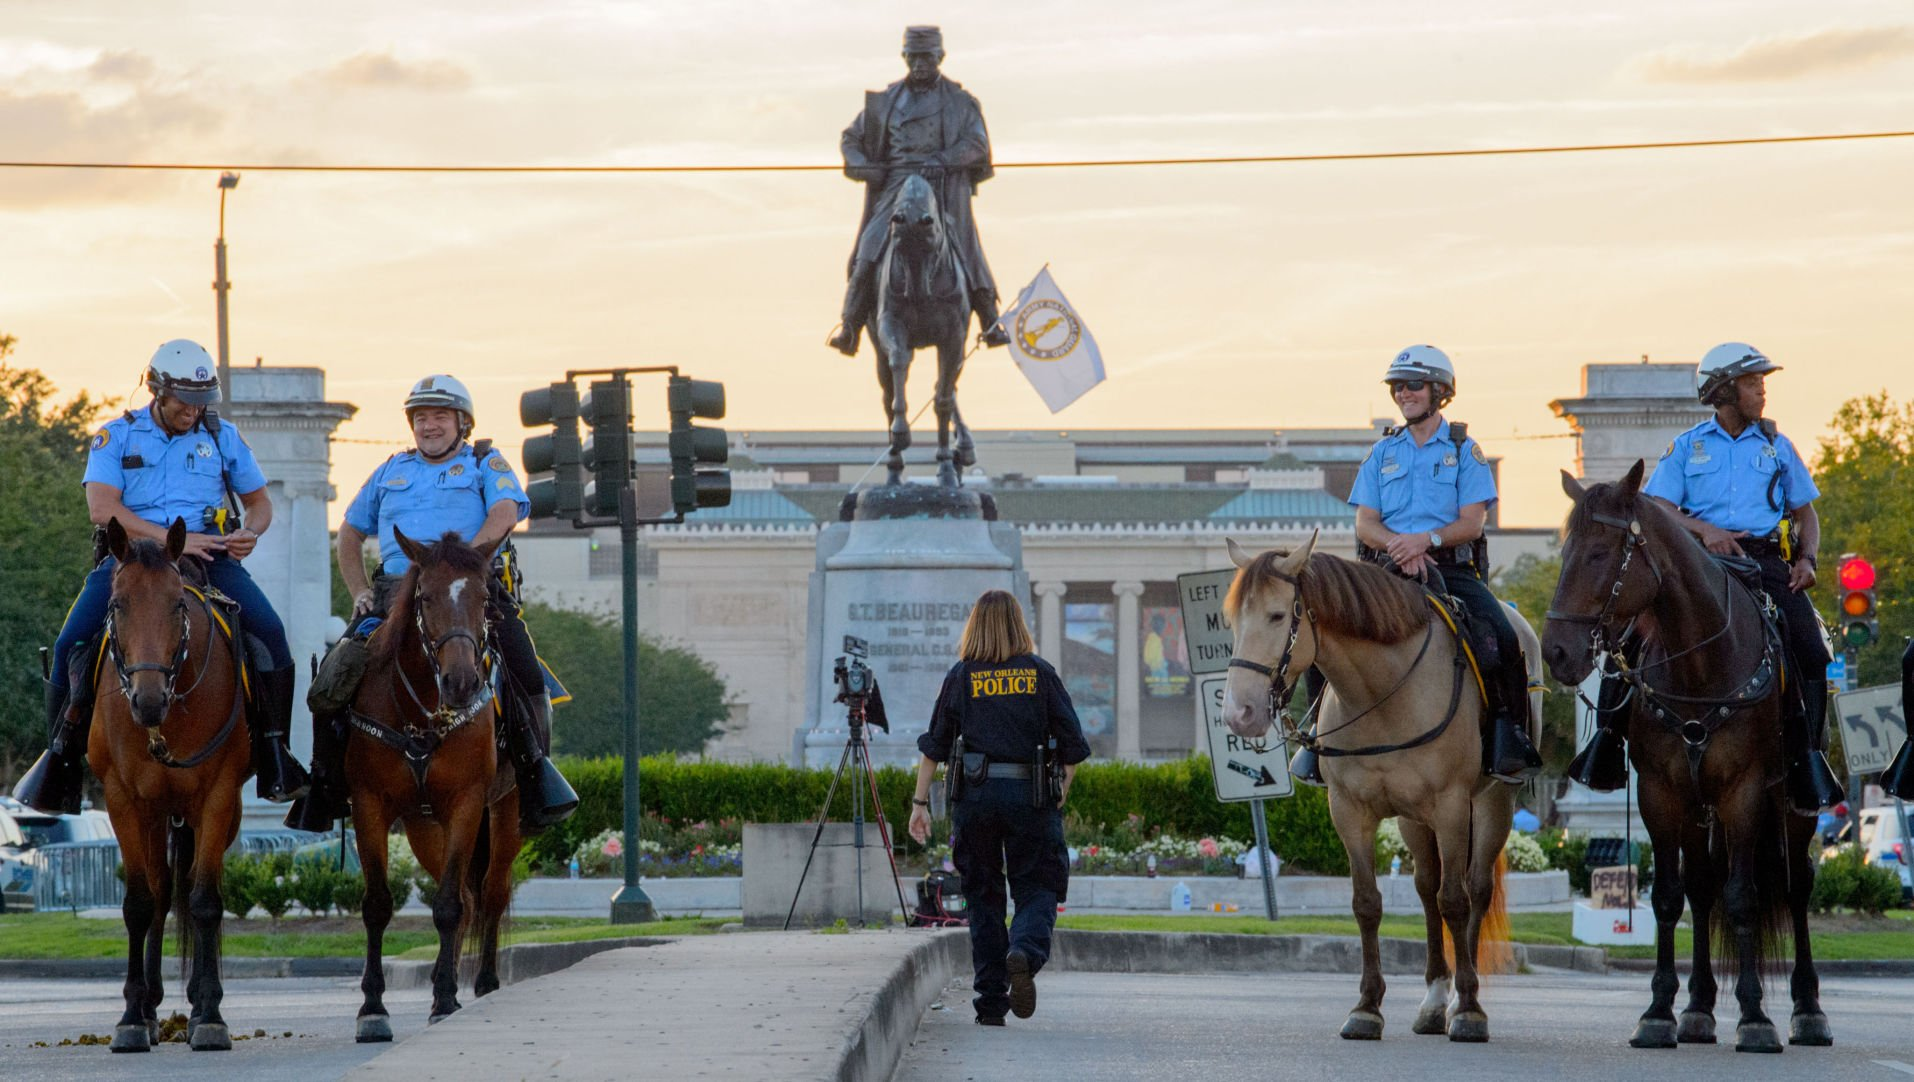 New Orleans Uproots Third Confederate Statue In Early Morning Operation